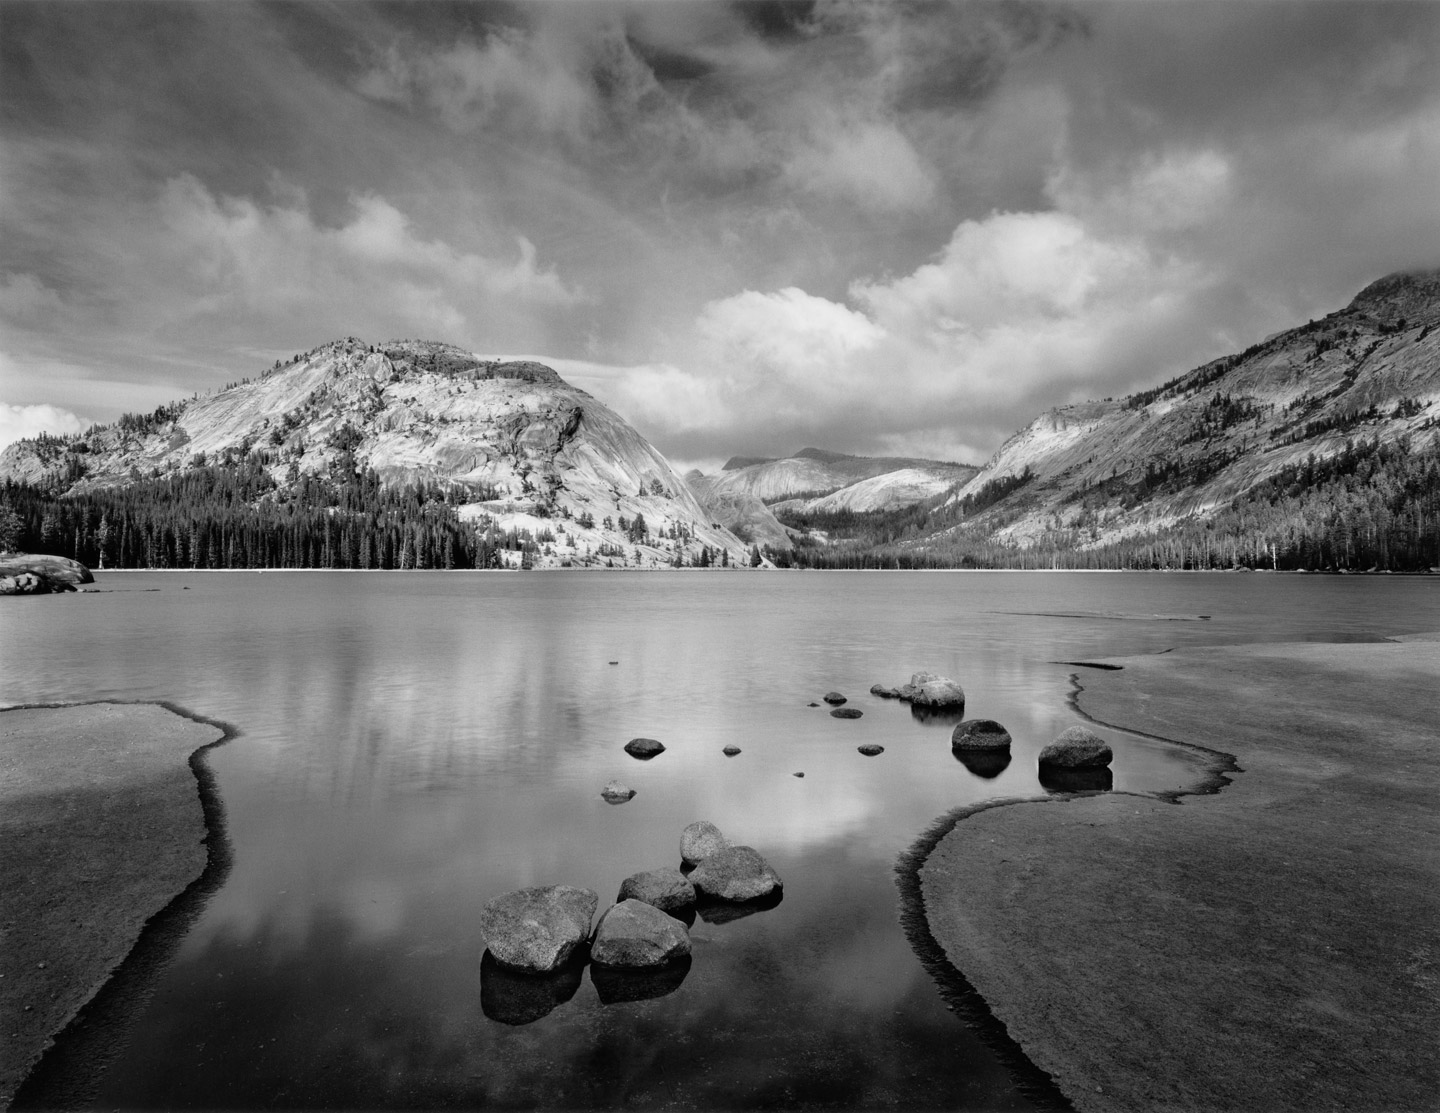 Photograph: Elina : Assignment 6: Ansel Adams And Photography